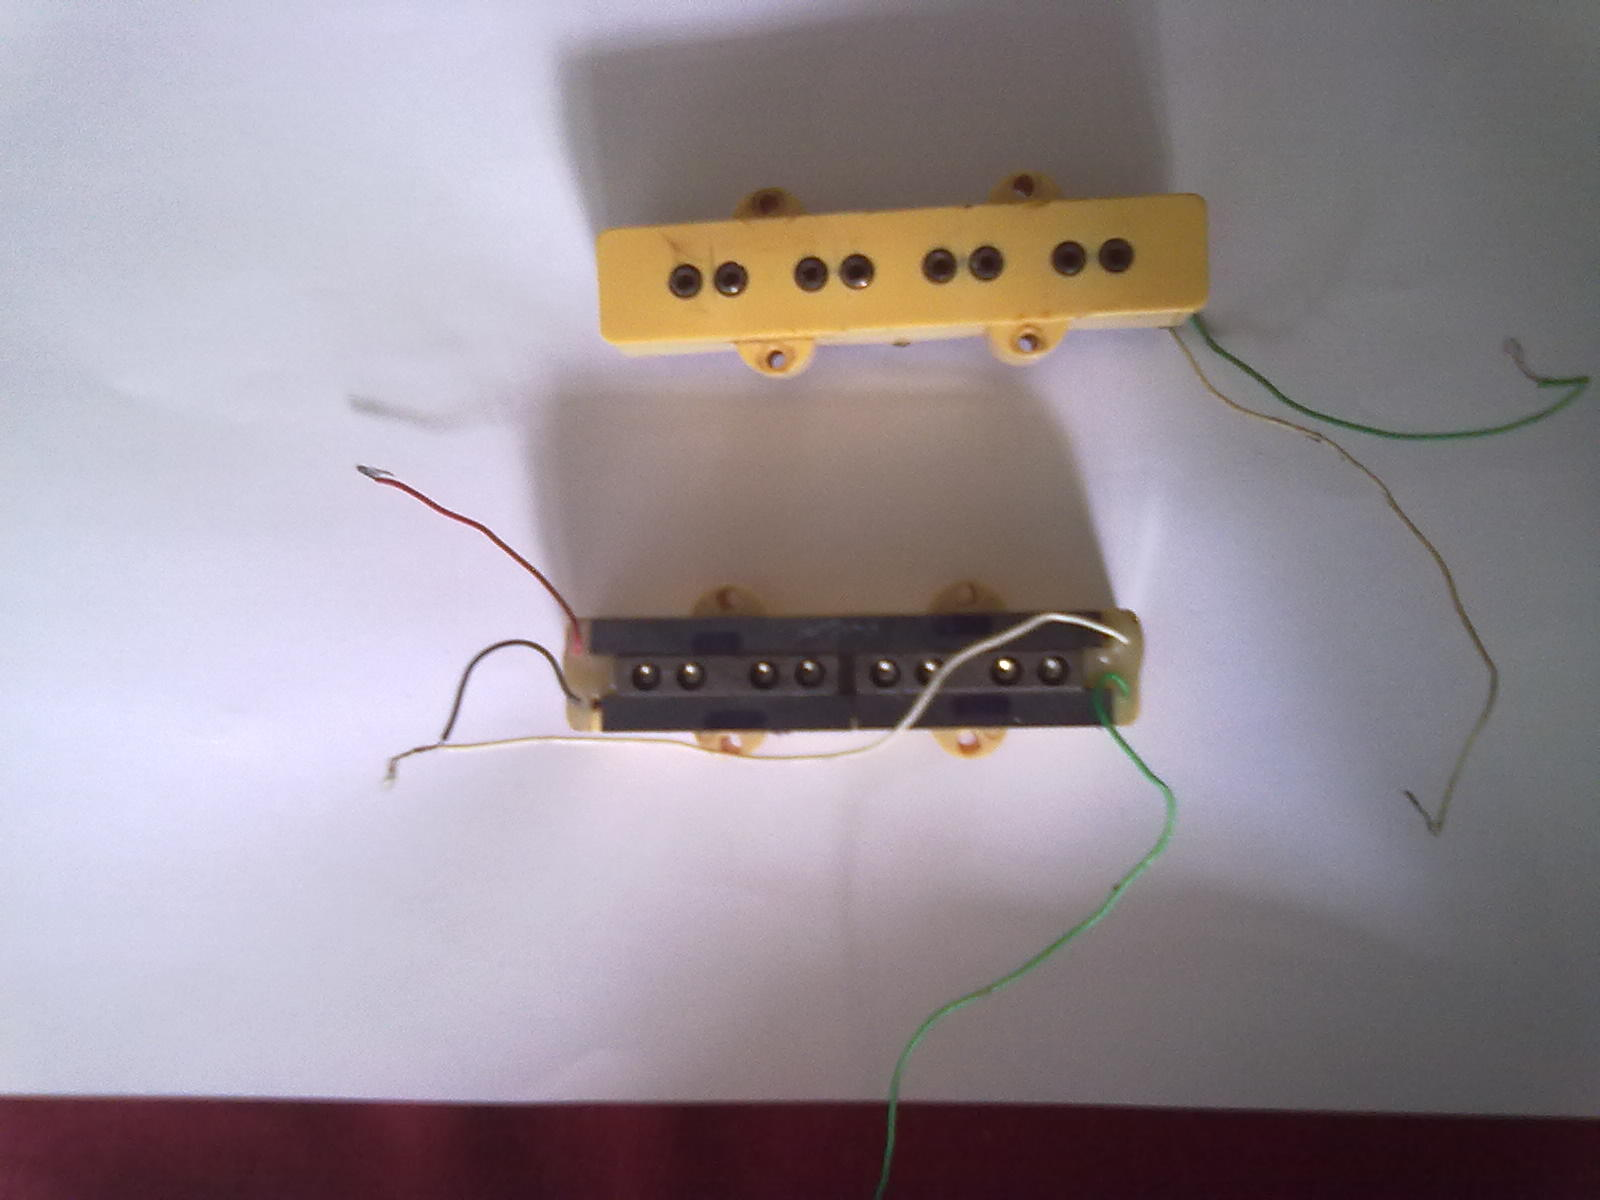 Lovely Two Humbuckers 5 Way Switch Thick Hh 5 Way Switch Wiring Clean Gretsch Wiring Harness Solar Panel Diagram Young Solar Panel Wiring Guide BlueSolar Panel Diagrams DiMarzio DP123 Model J Image (#230272)   Audiofanzine